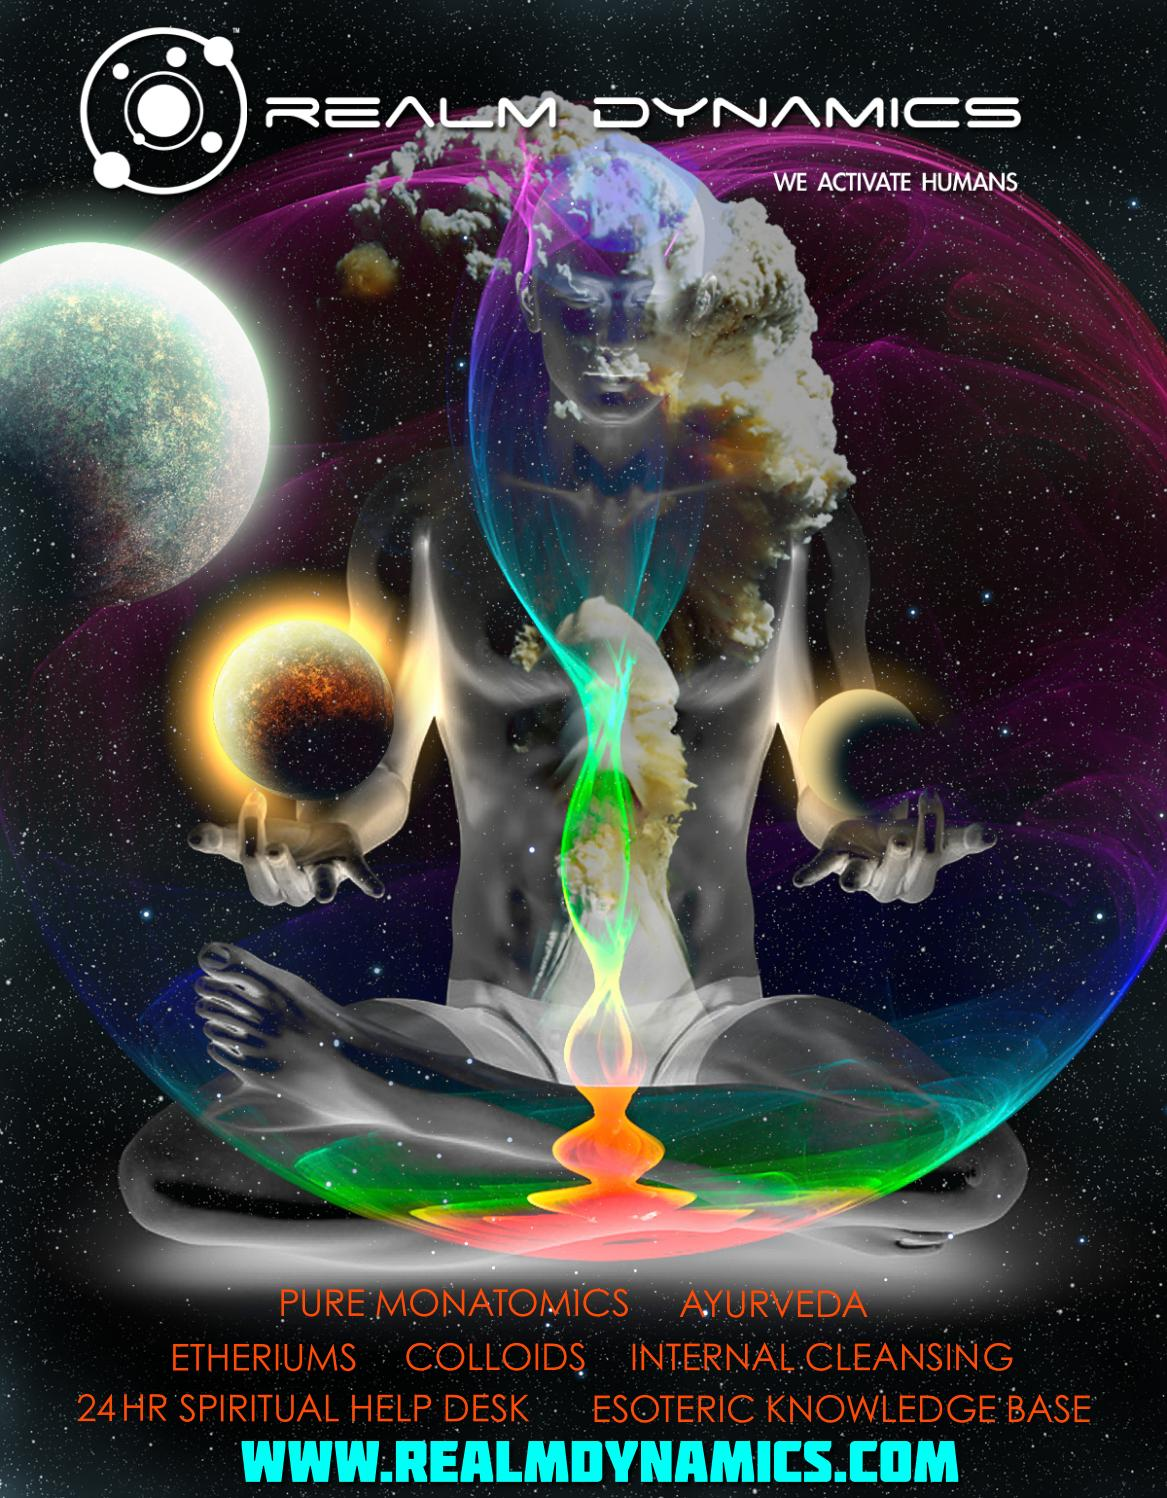 Chakra yoga w images by shaikh bdulgafar - issuu